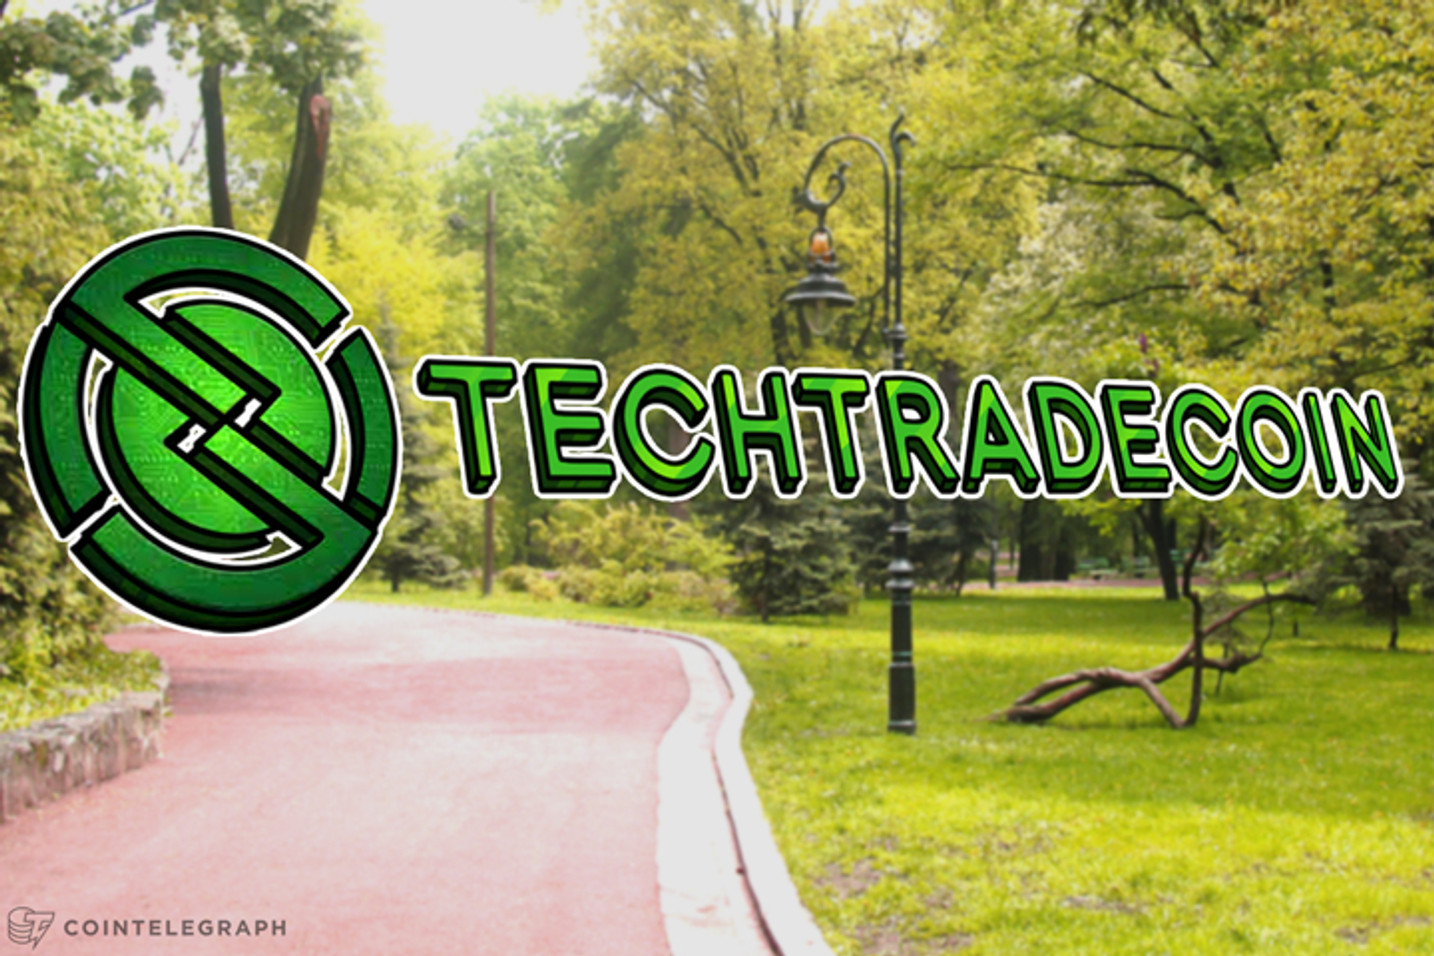 Techtradecoin – Decentralized Apps in Service of Hospitality, E-commerce and Real Estate